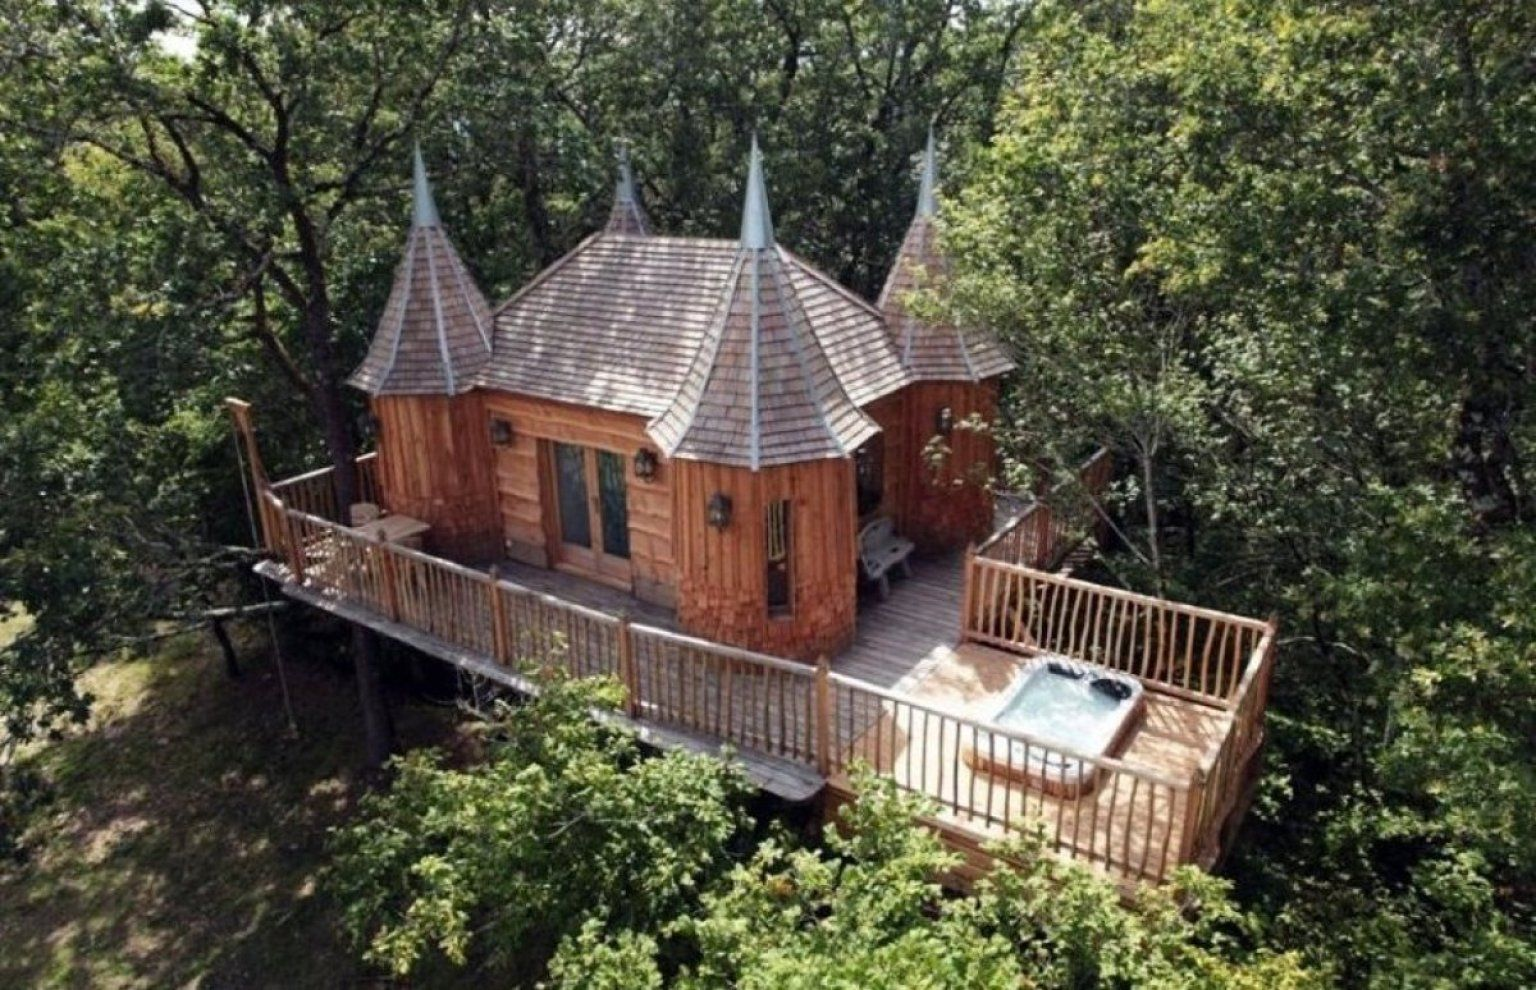 kids tree house inside tips and photos publish at june 12 2017 1438 pm and name post is plain kids tree house inside on decor in category tree design